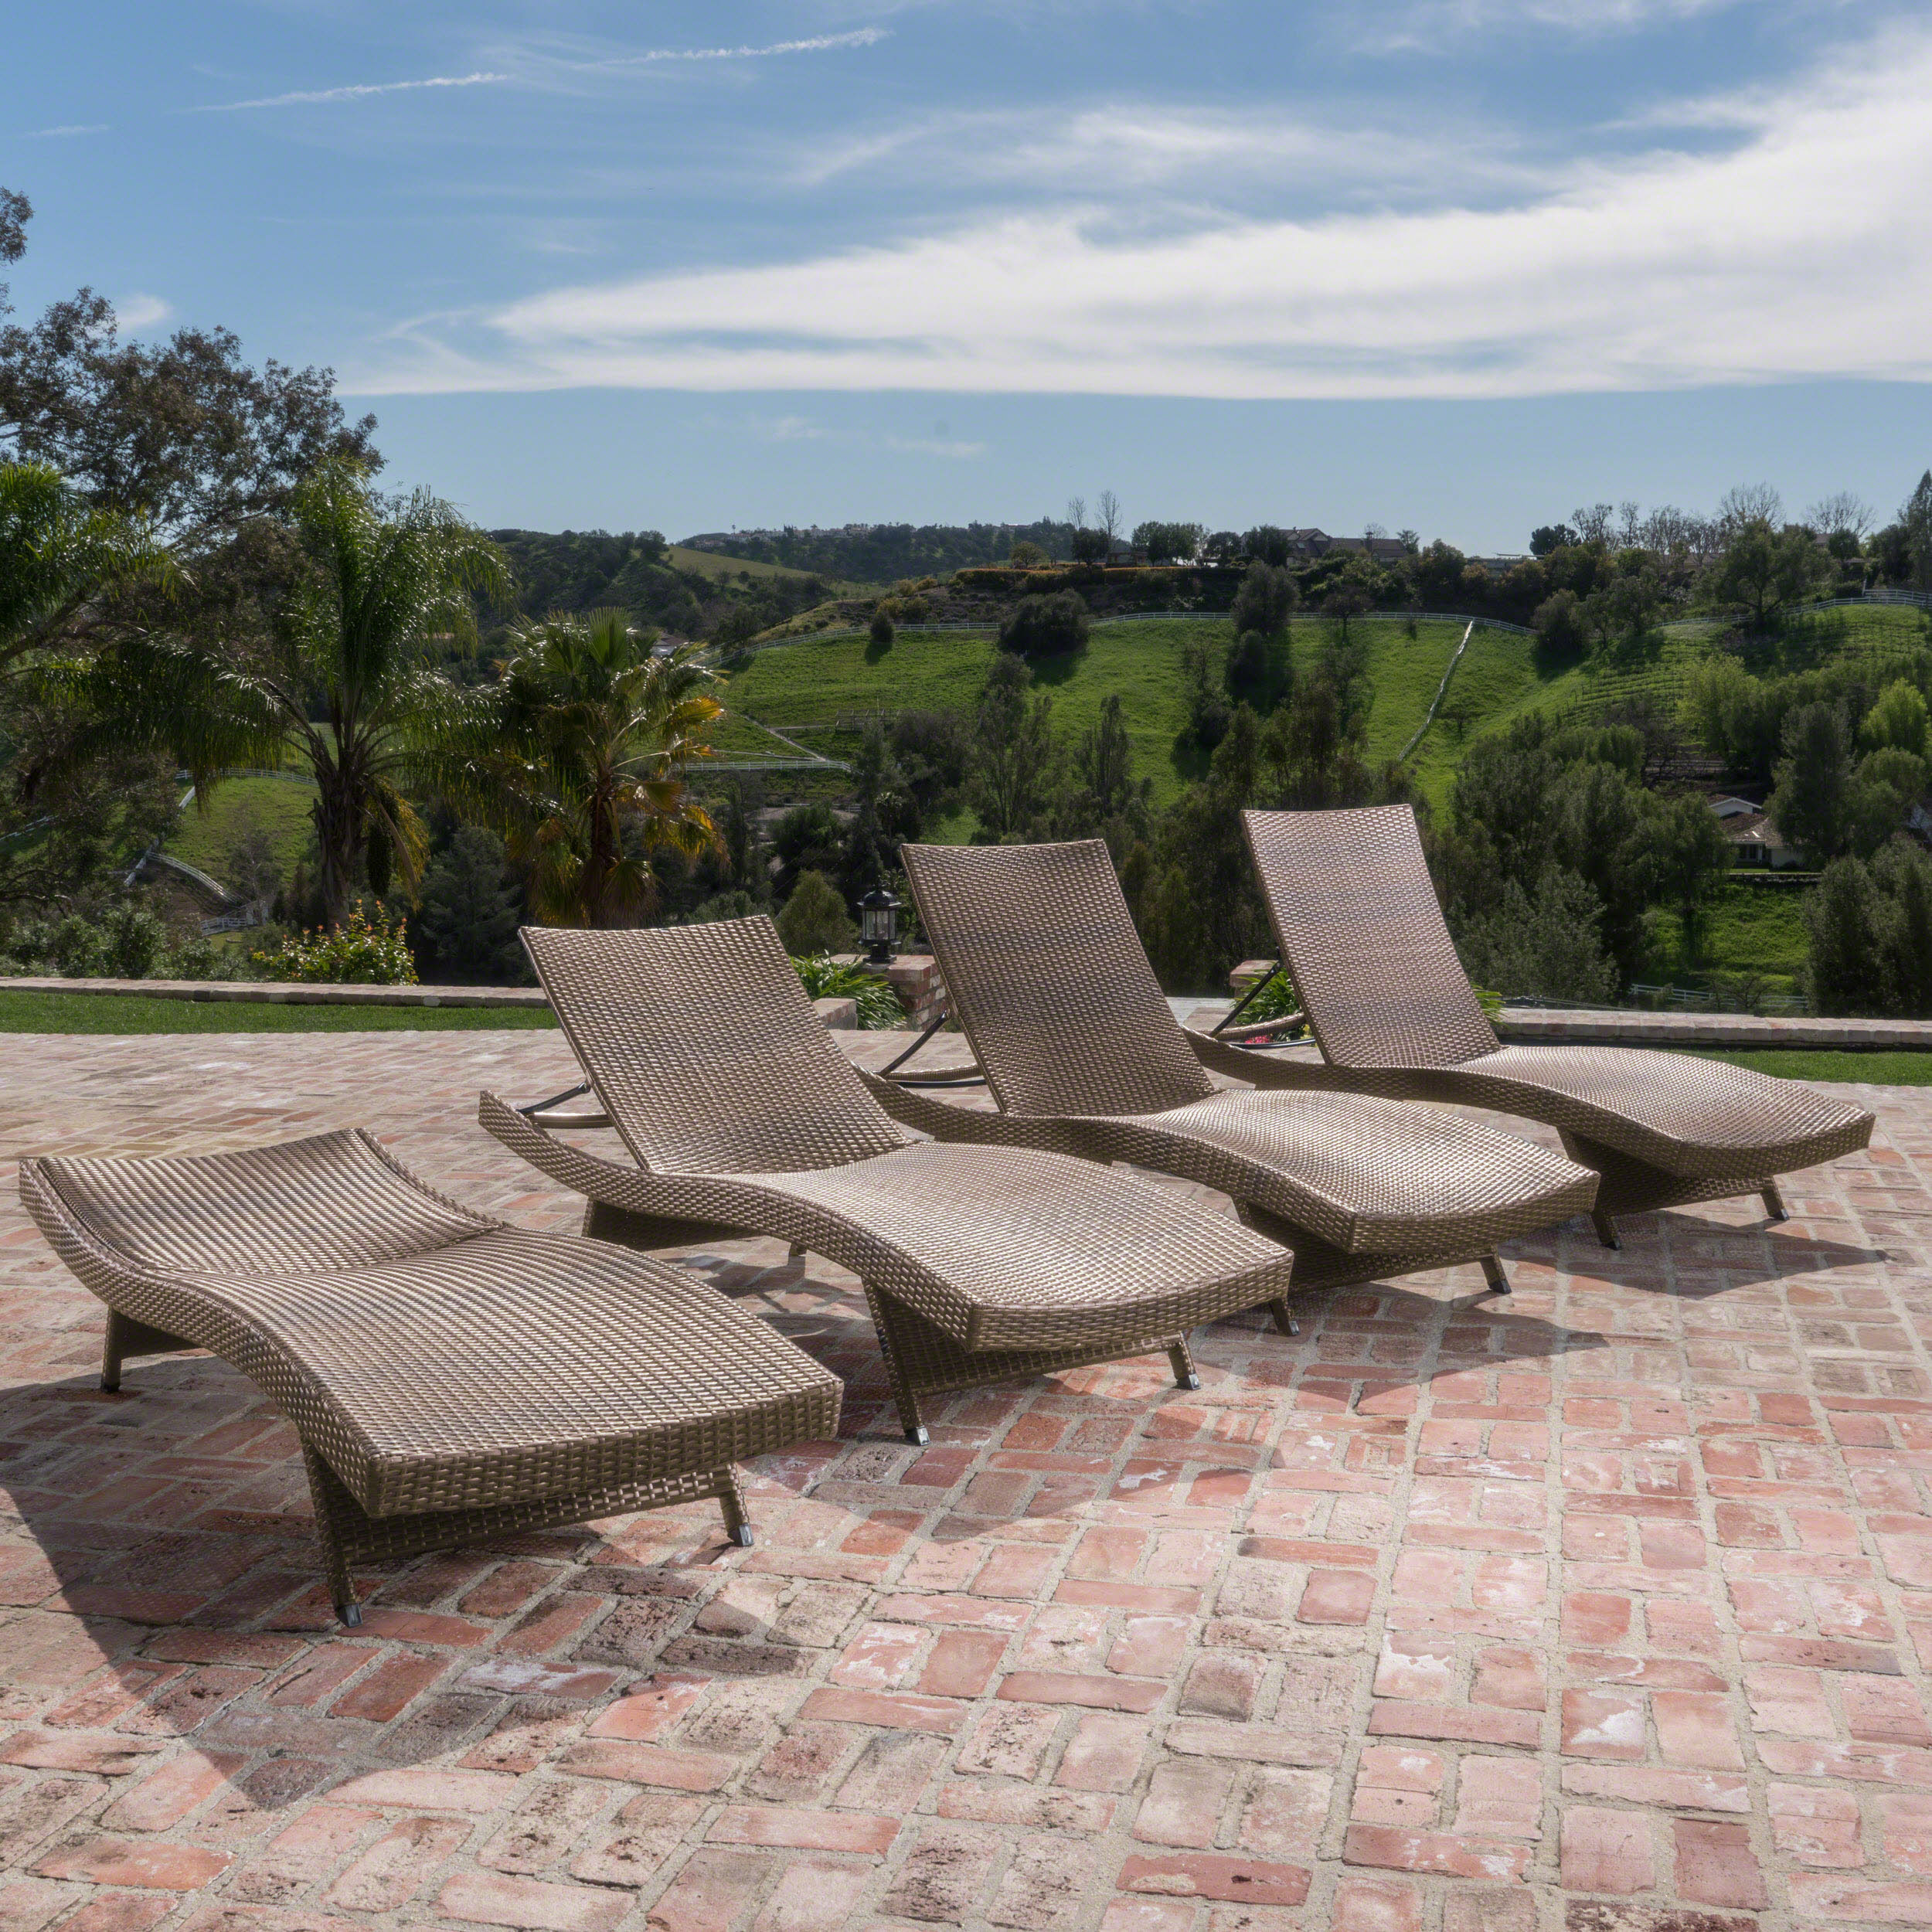 Lakeport Outdoor Wicker Armless Chaise Lounge, Set of 4, Mixed Mocha